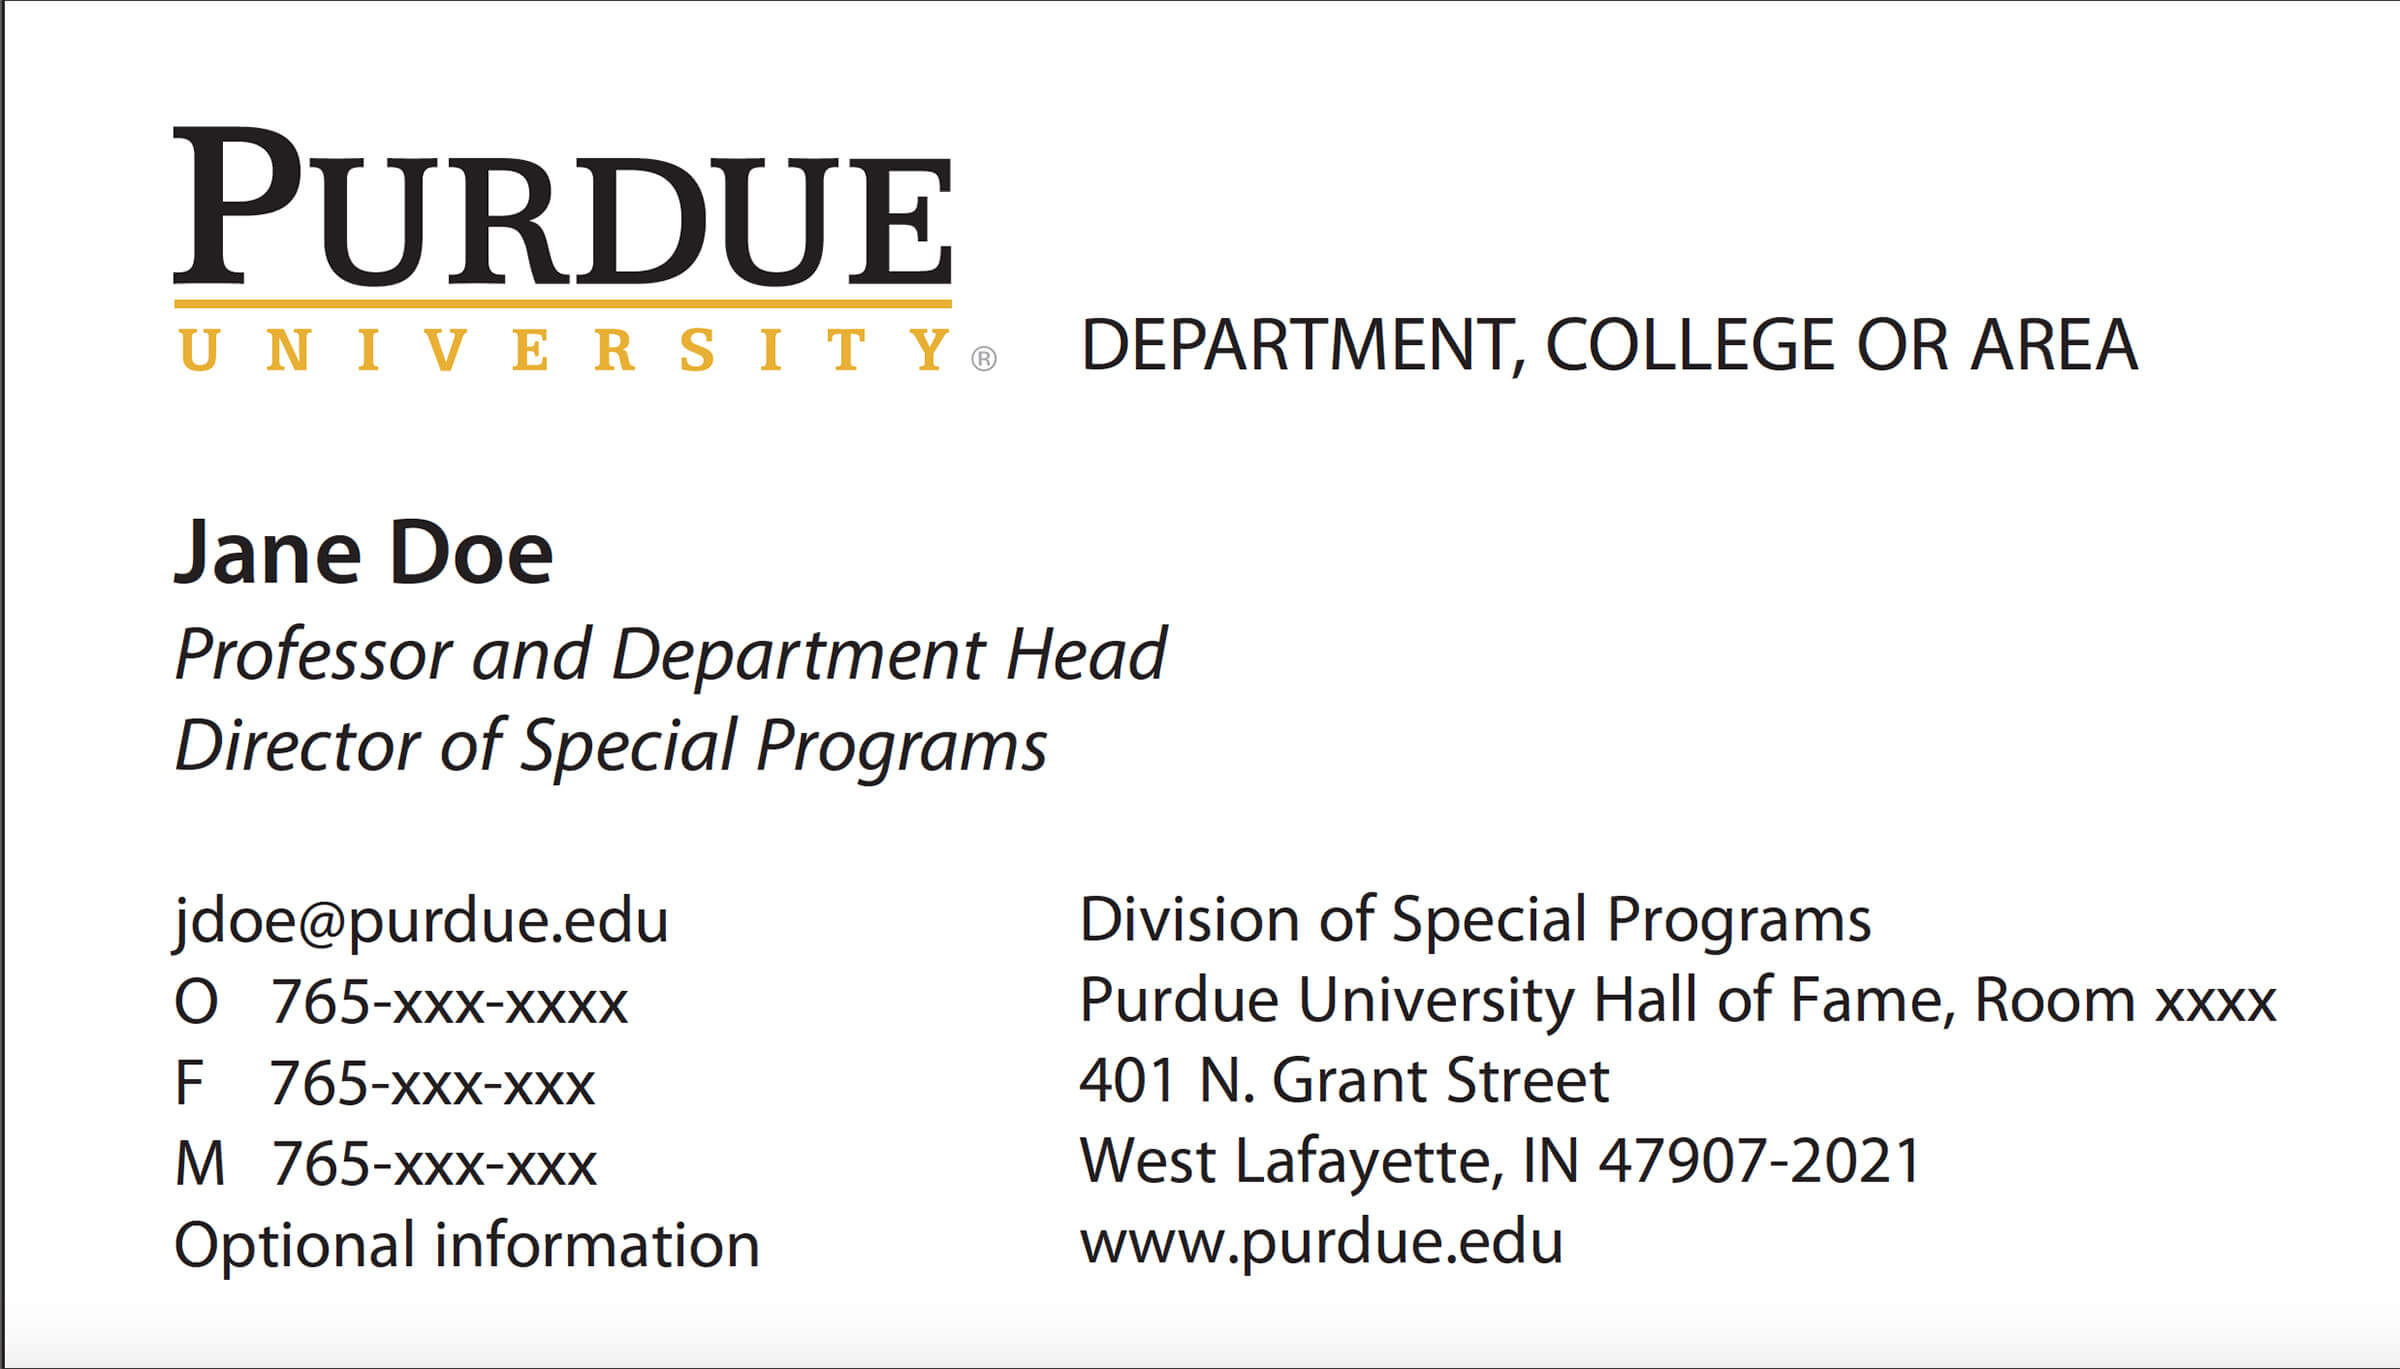 New Business Card Template Now Online - Purdue University News In Graduate Student Business Cards Template